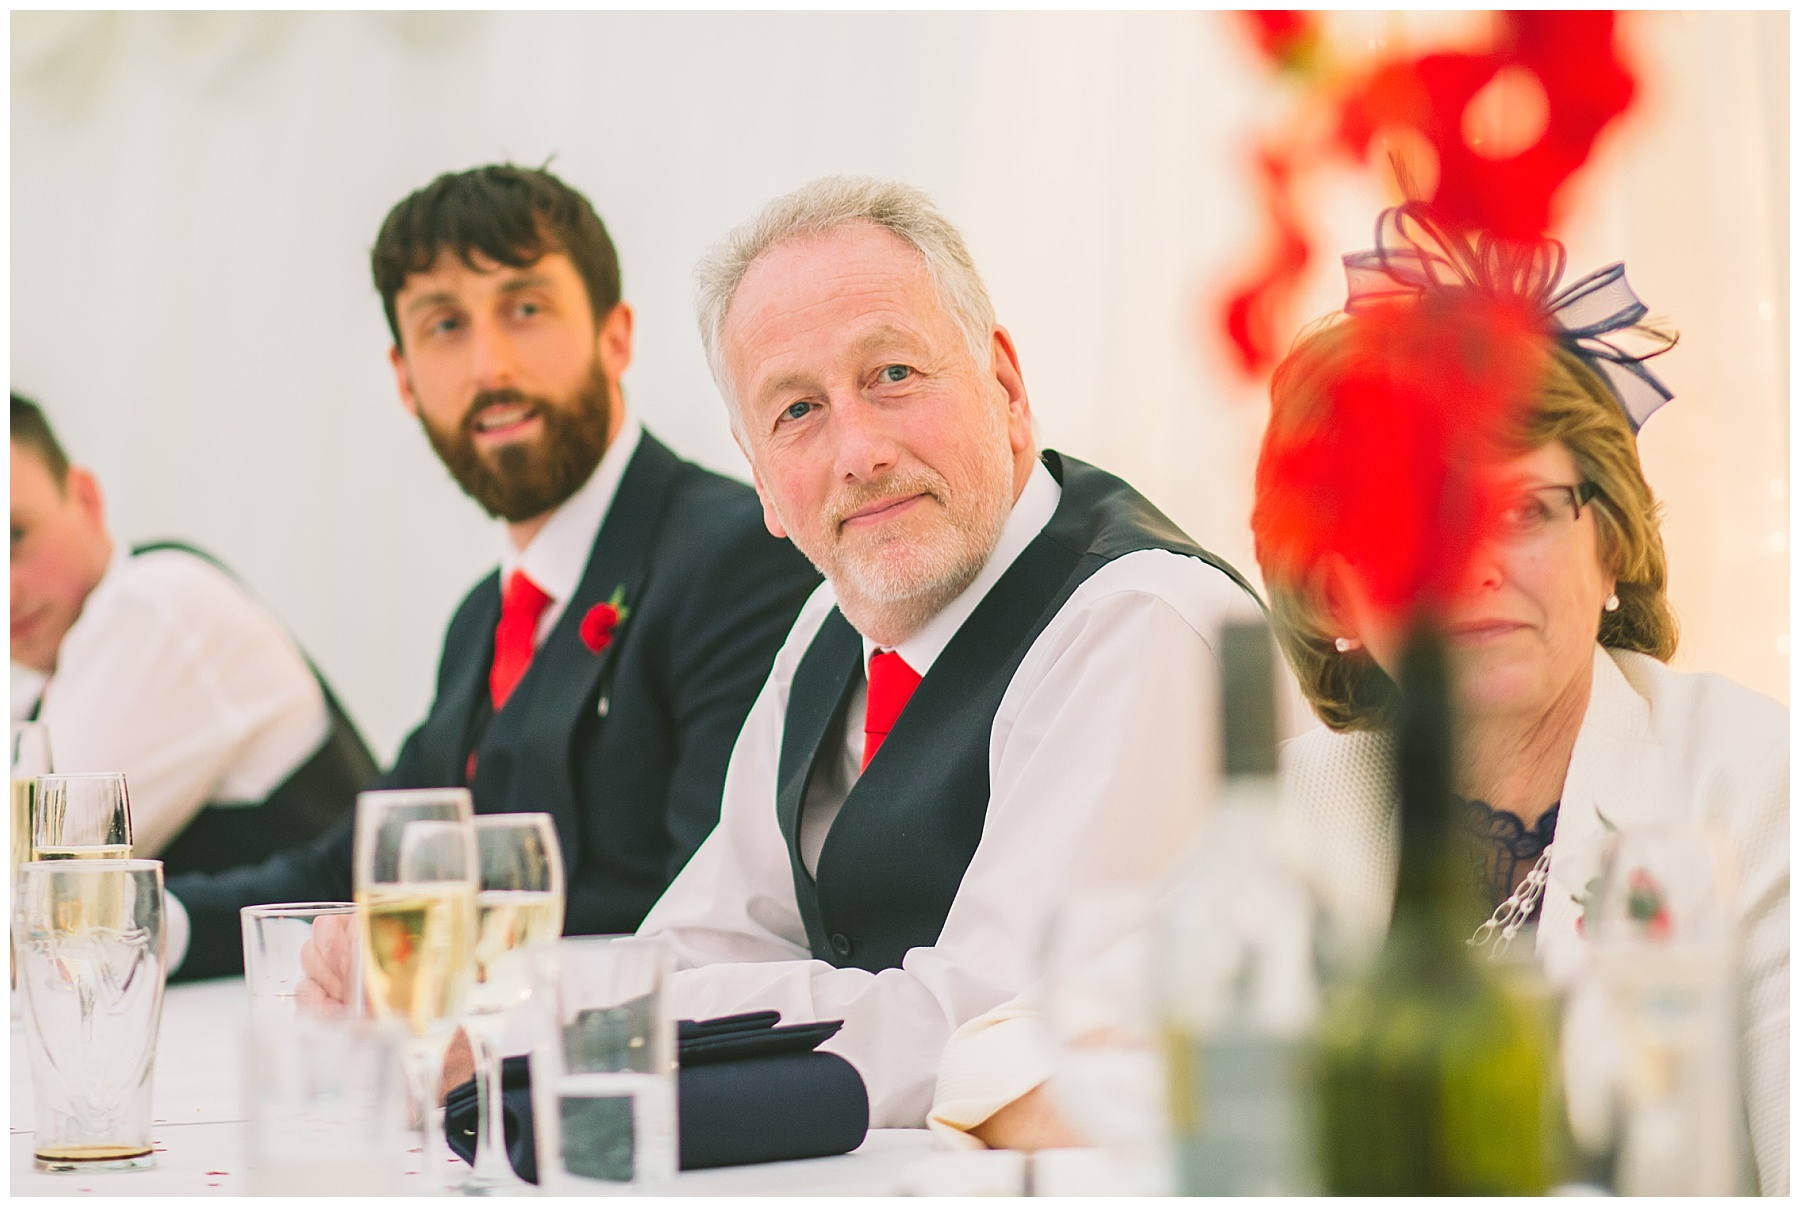 Grooms father watches on during speeches